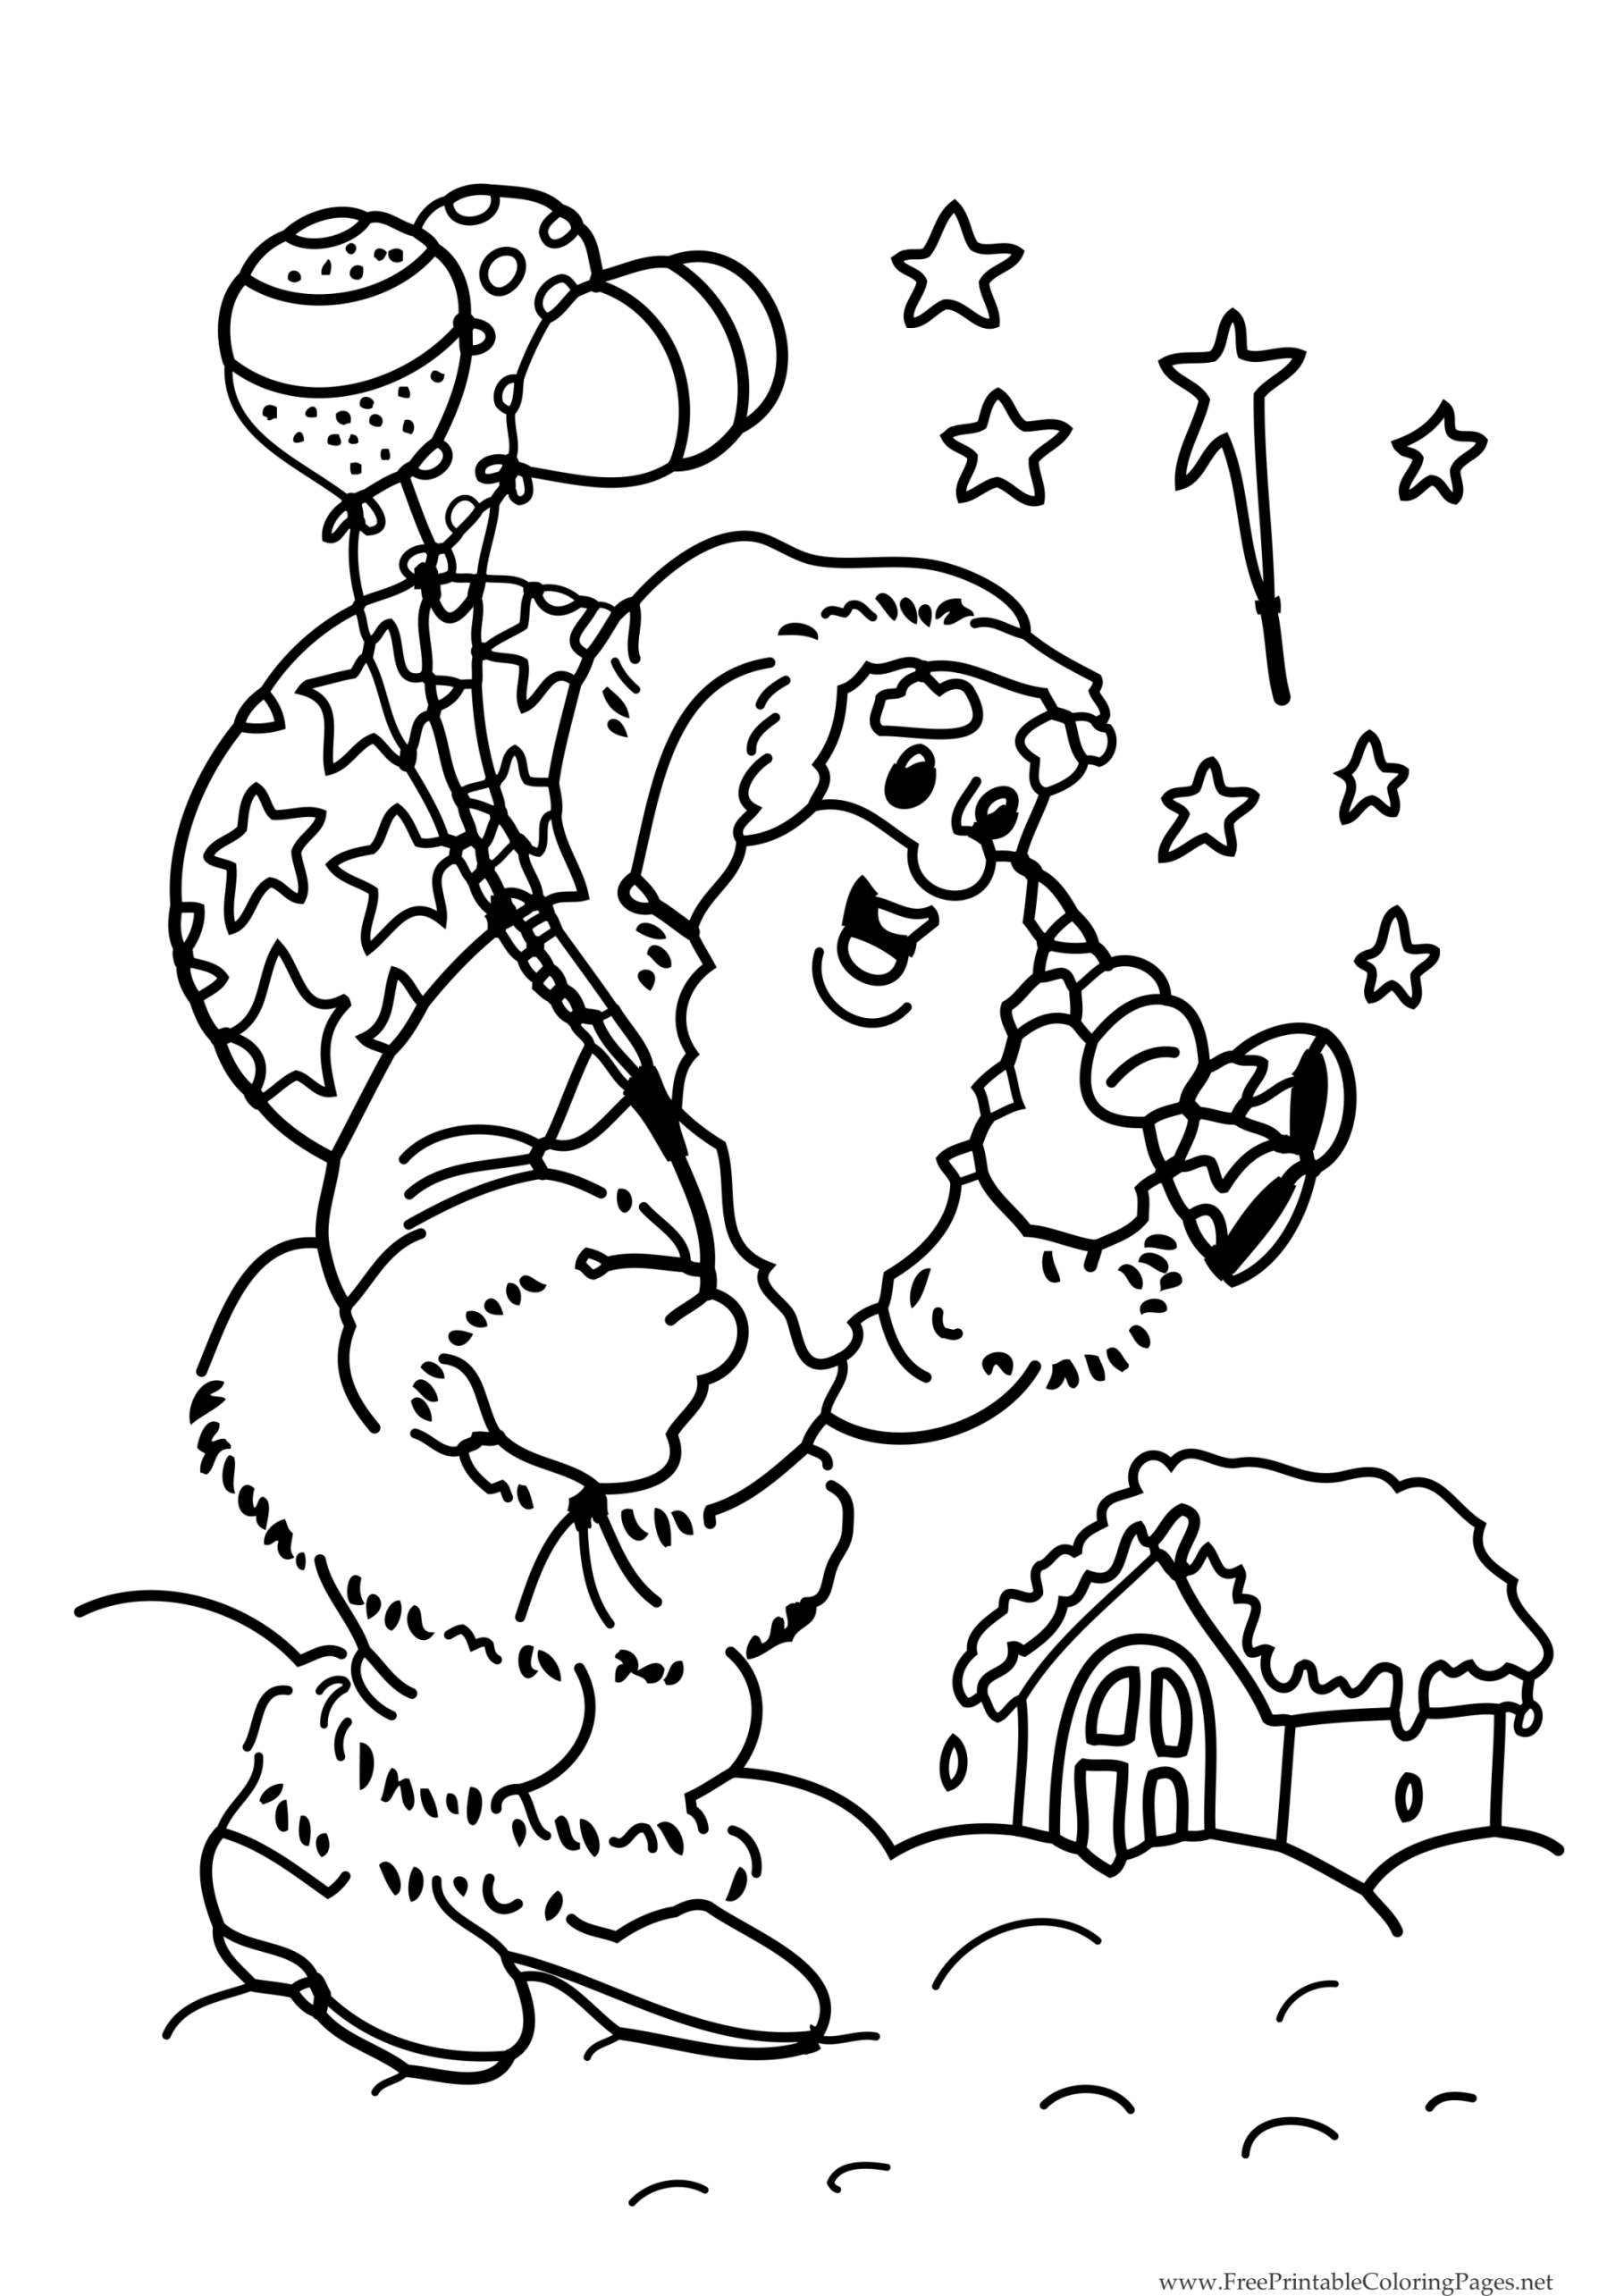 Santa claus for kids - Santa Claus Kids Coloring Pages